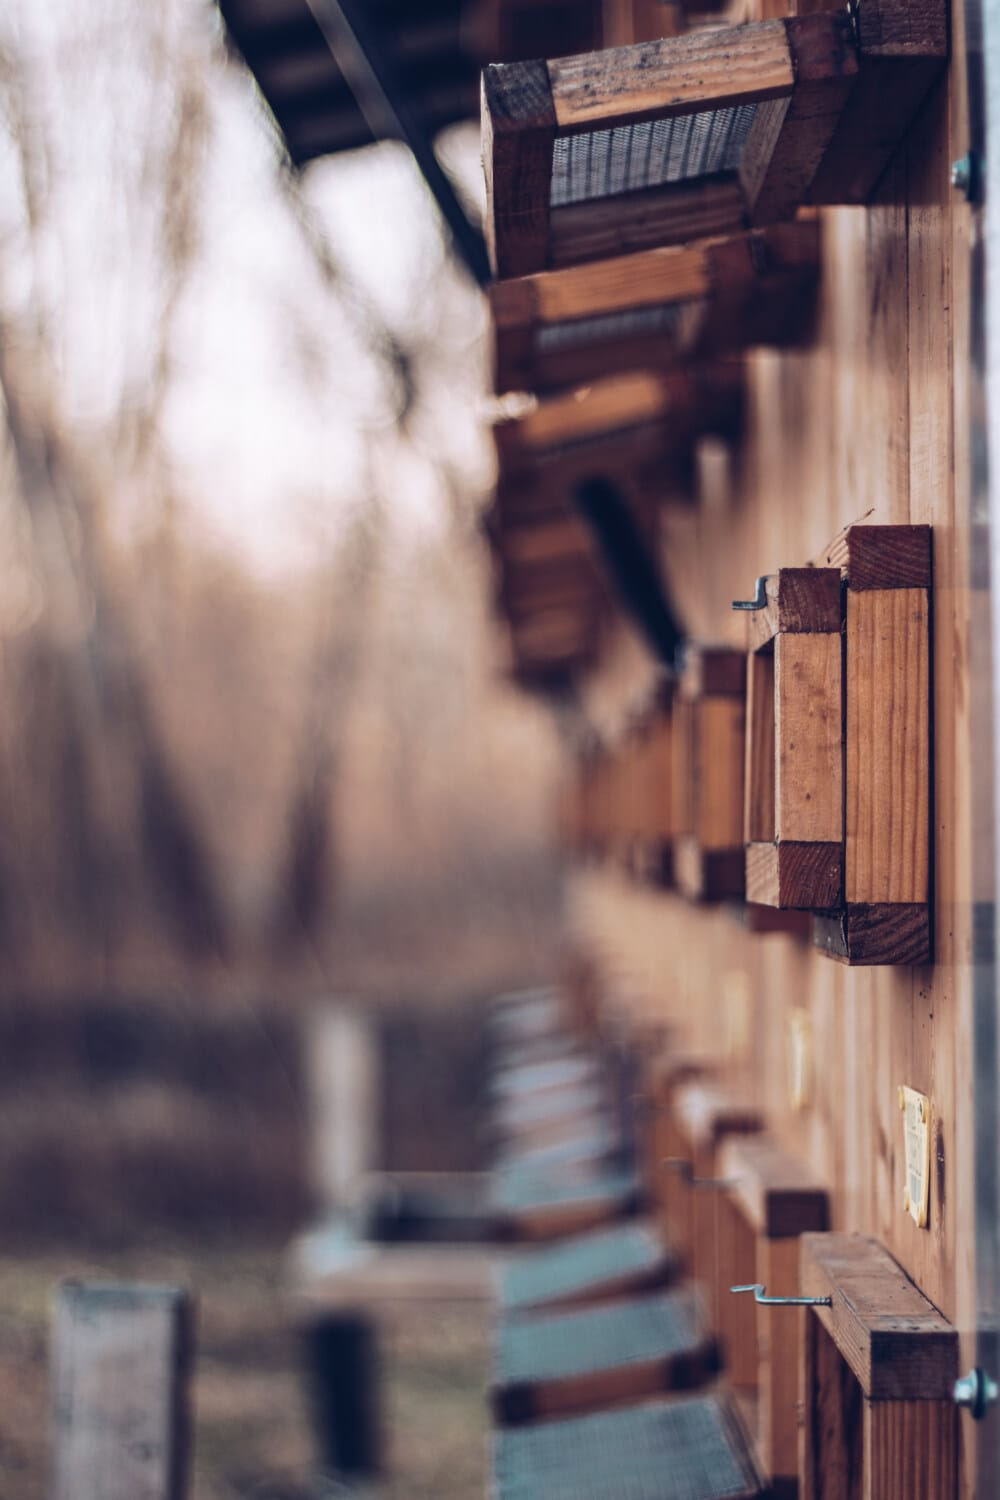 cage, wooden, handmade, outdoor, close-up, wood, outdoors, architecture, old, retro